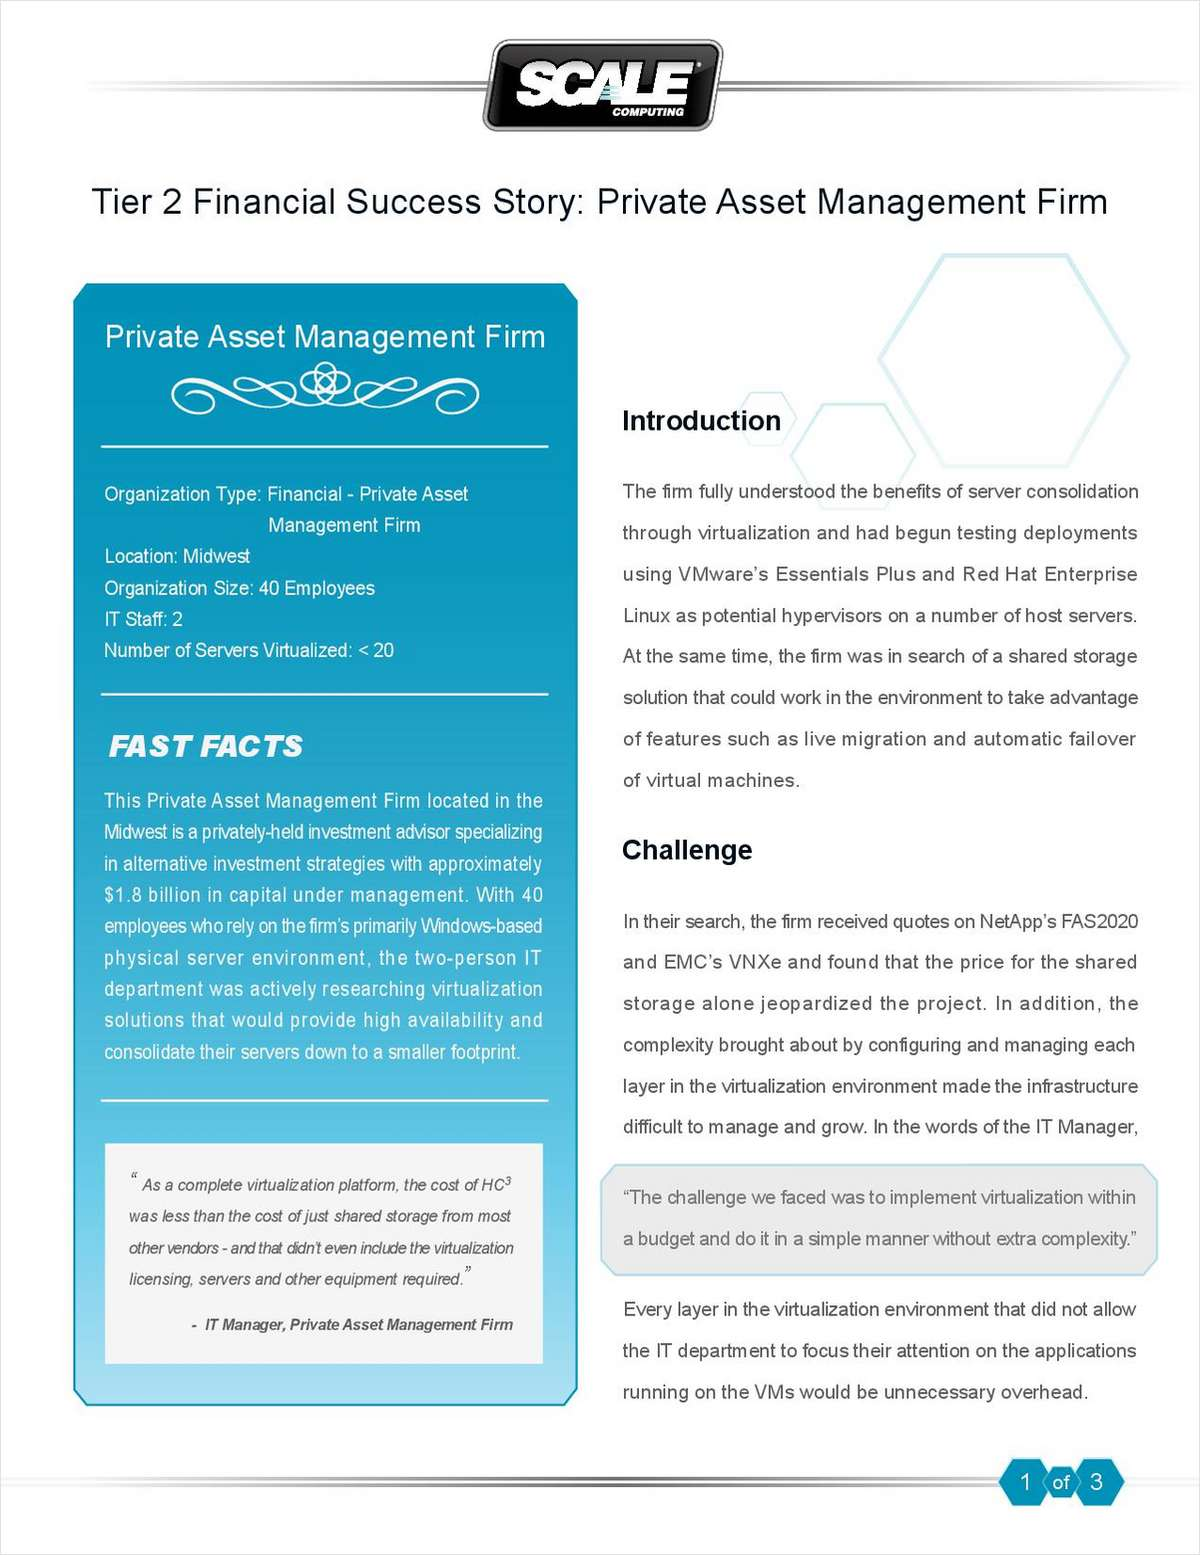 Tier 2 Financial Success Story: Private Asset Management Firm